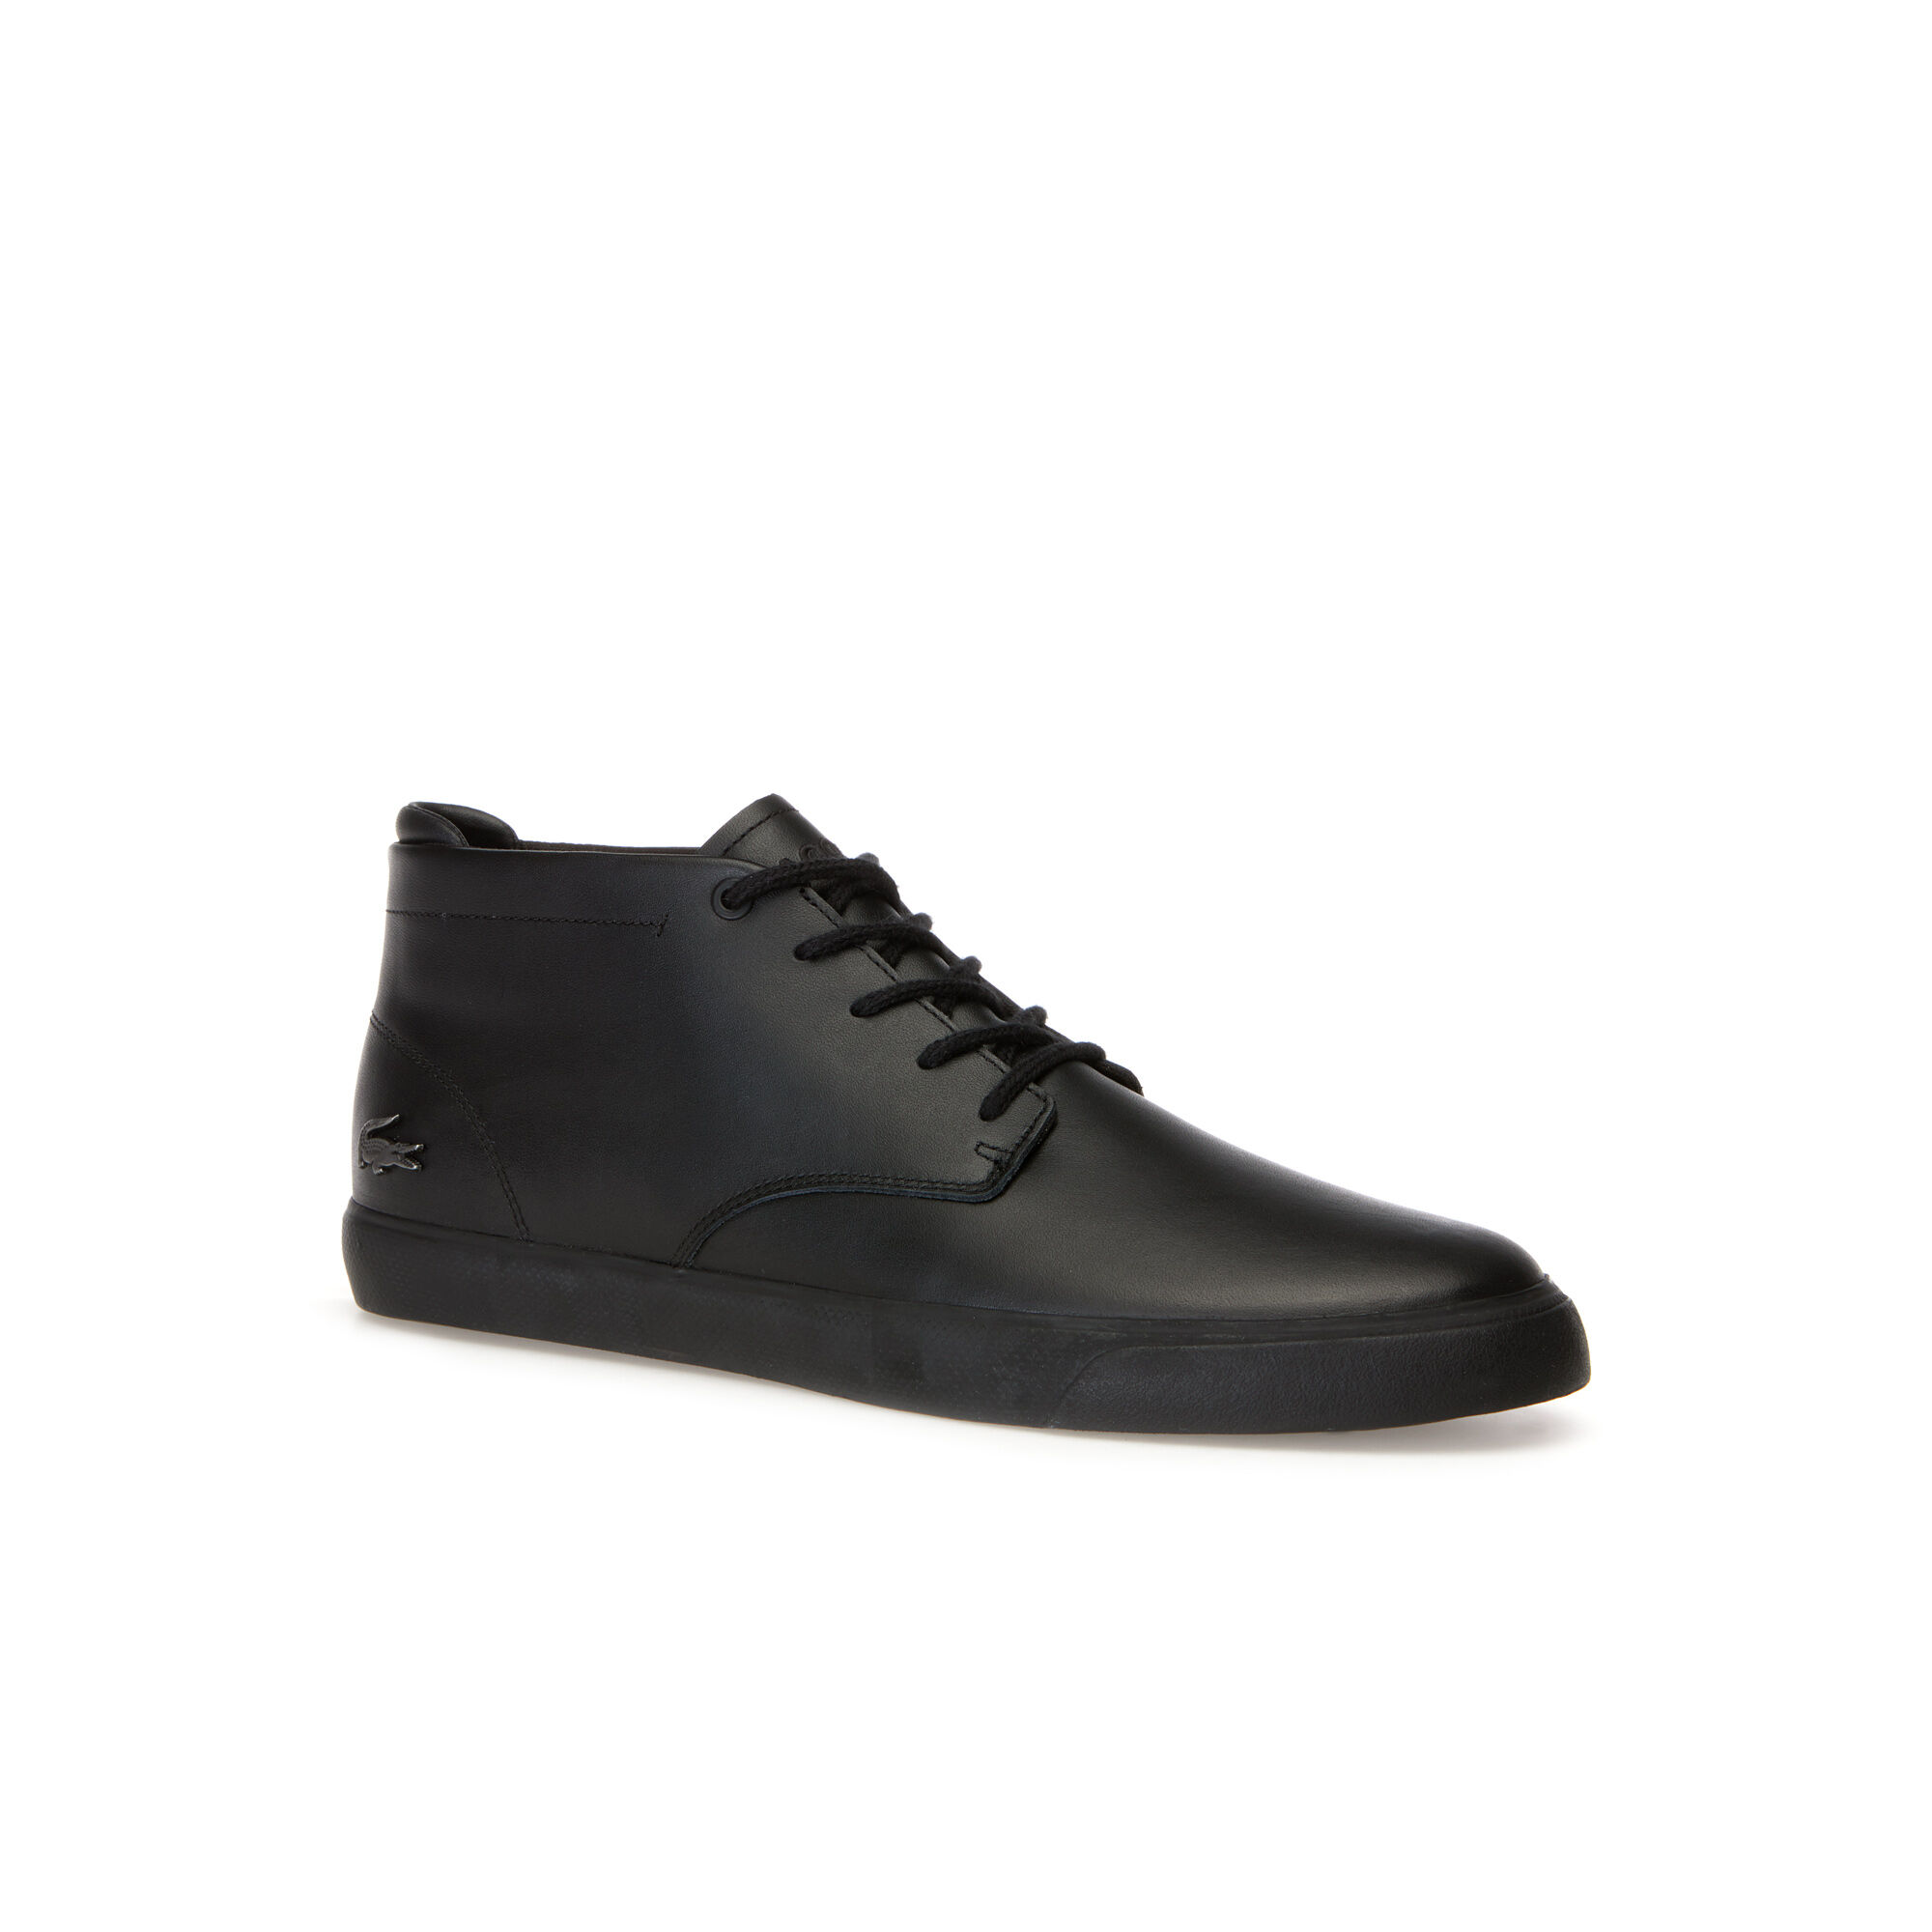 Men Get Cheap Latest Series Lacoste All Black Casual Shoes